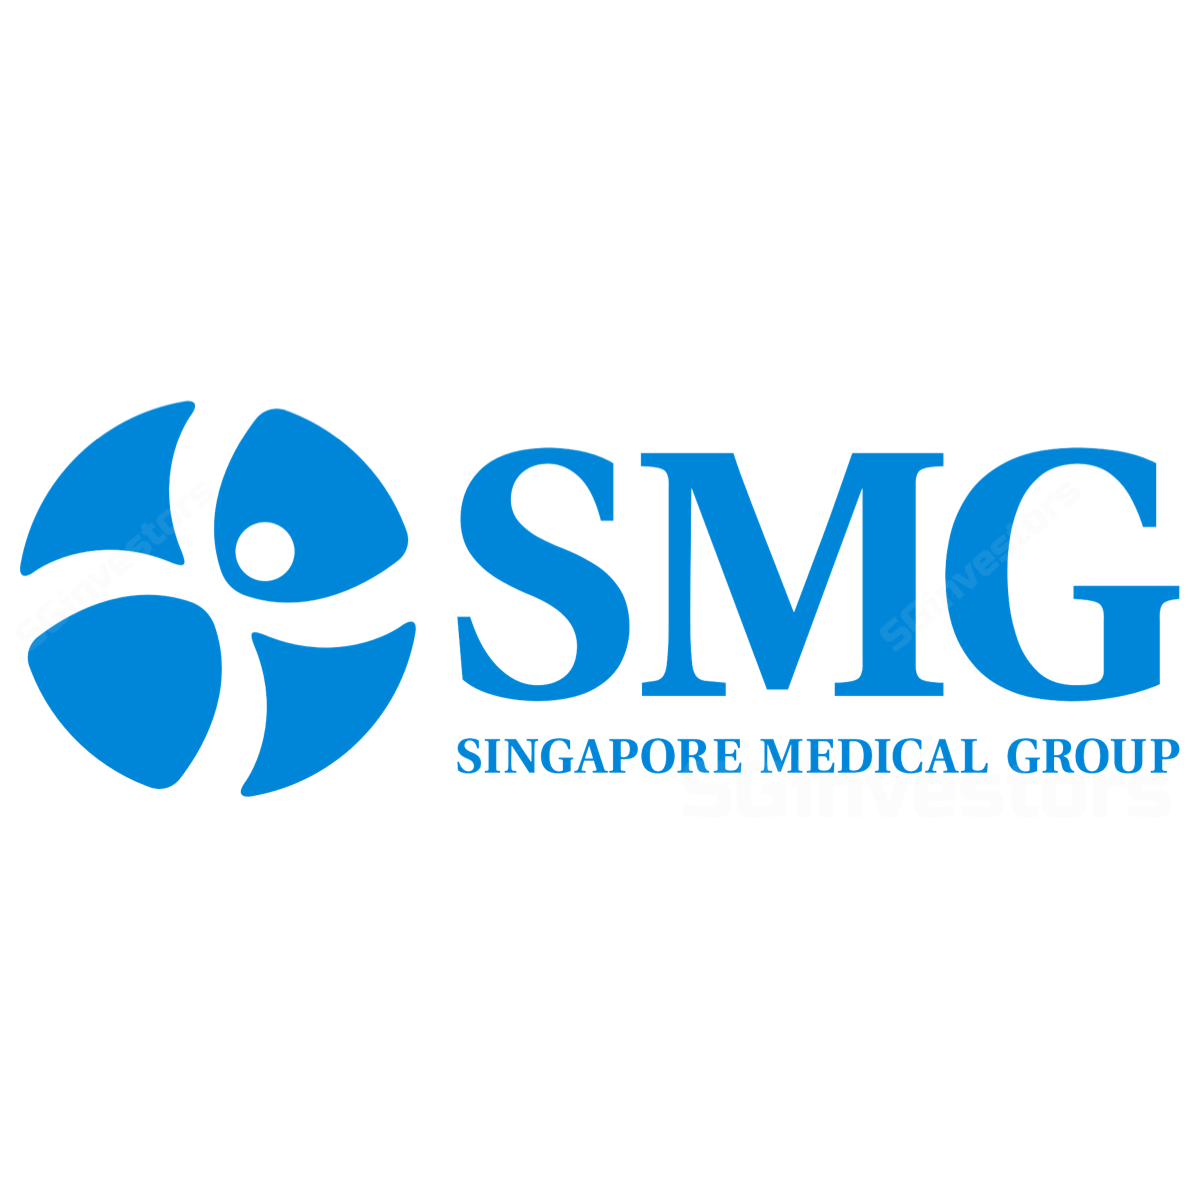 Singapore Medical Group (SMG SP) - Maybank Kim Eng 2017-08-16: Just What The Doctor Ordered